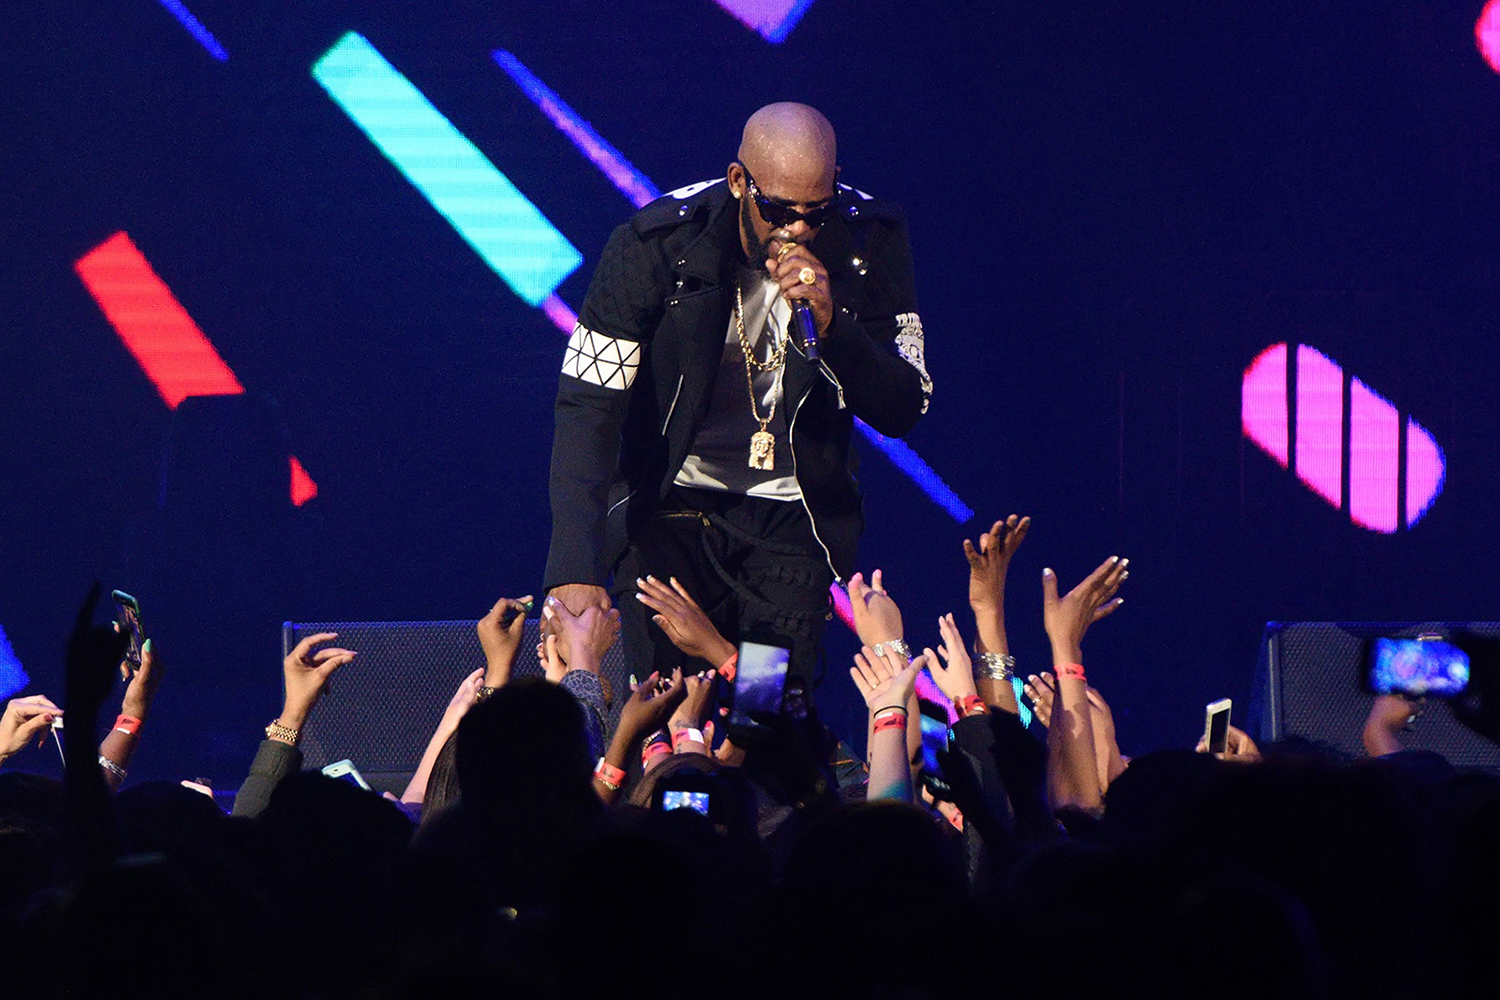 R. Kelly performs during The Buffet Tour on May 7, 2016 at Allstate Arena in Chicago, Illinois. (Daniel Boczarski/Getty Images/TNS)